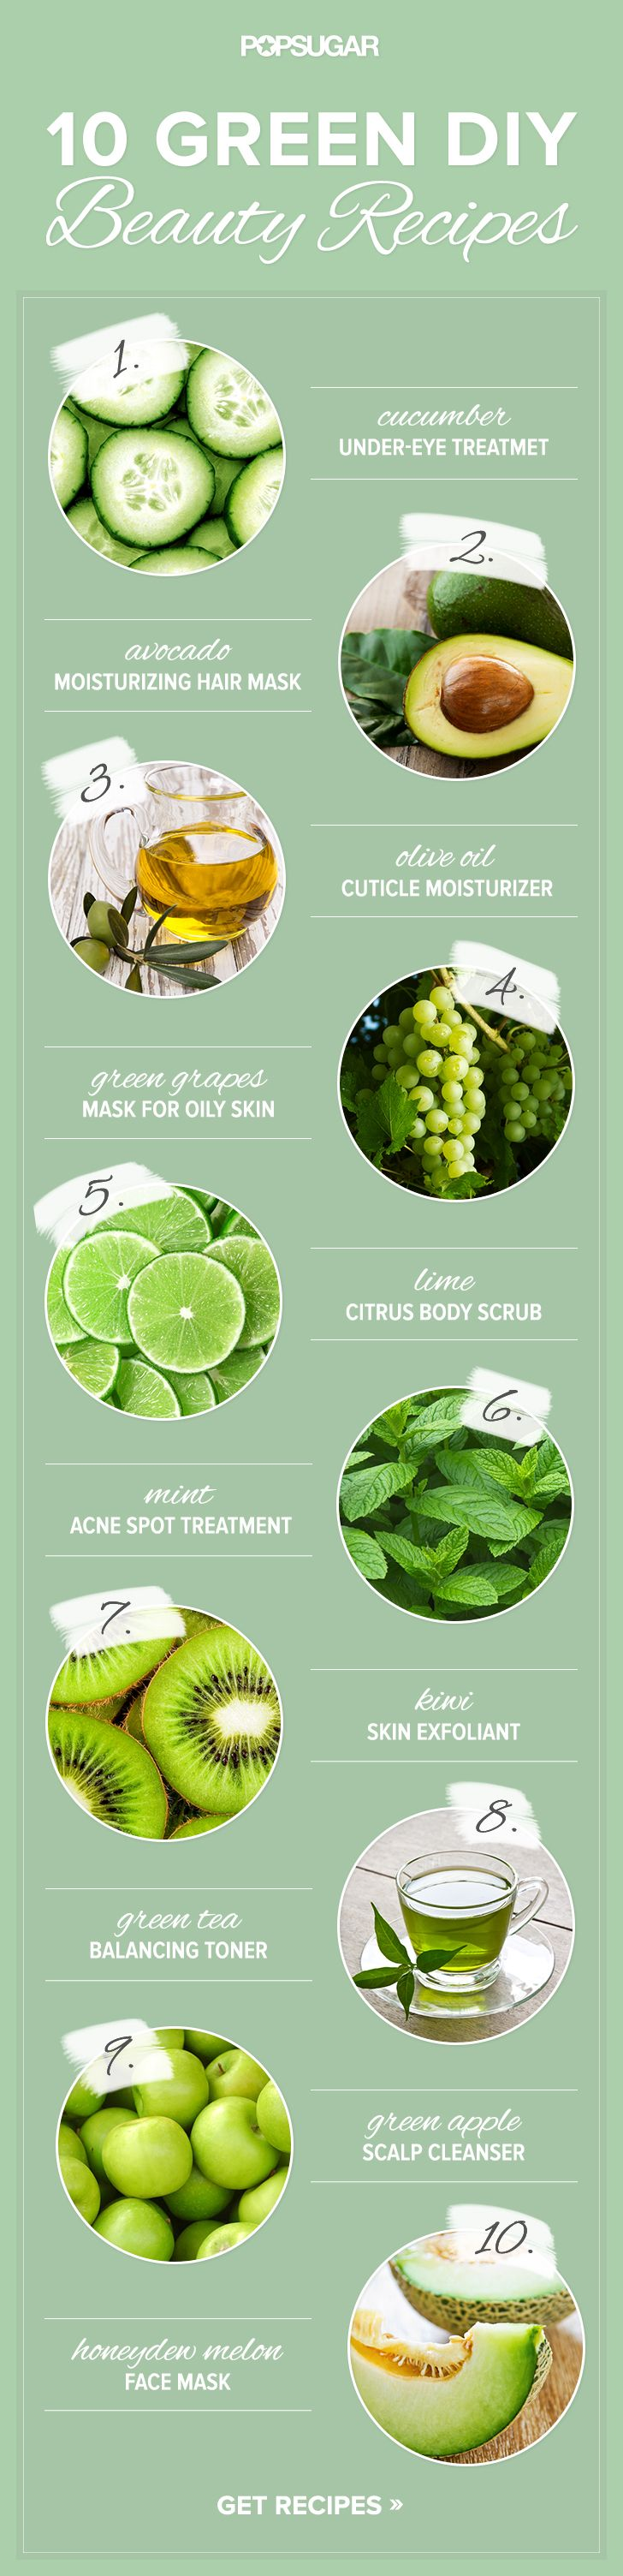 10 DIY beauty recipes that are really green.